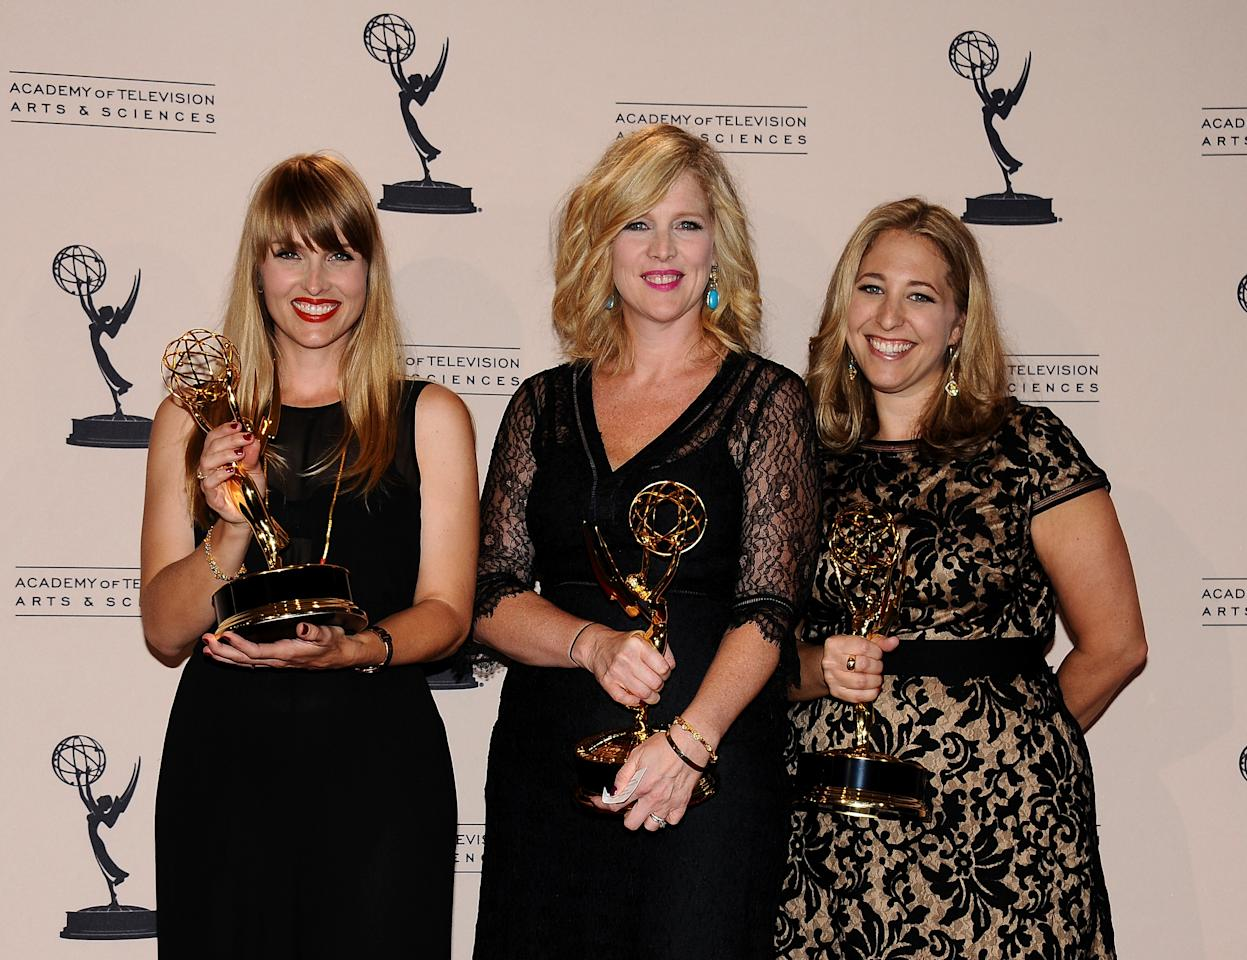 From left, Katia Blichfeld, Jennifer McNamara-Shroff and Jessica Daniels pose in the press room at the 2013 Primetime Creative Arts Emmy Awards, on Sunday, September 15, 2013 at Nokia Theatre L.A. Live, in Los Angeles, Calif. (Photo by Scott Kirkland/Invision for Academy of Television Arts & Sciences/AP Images)